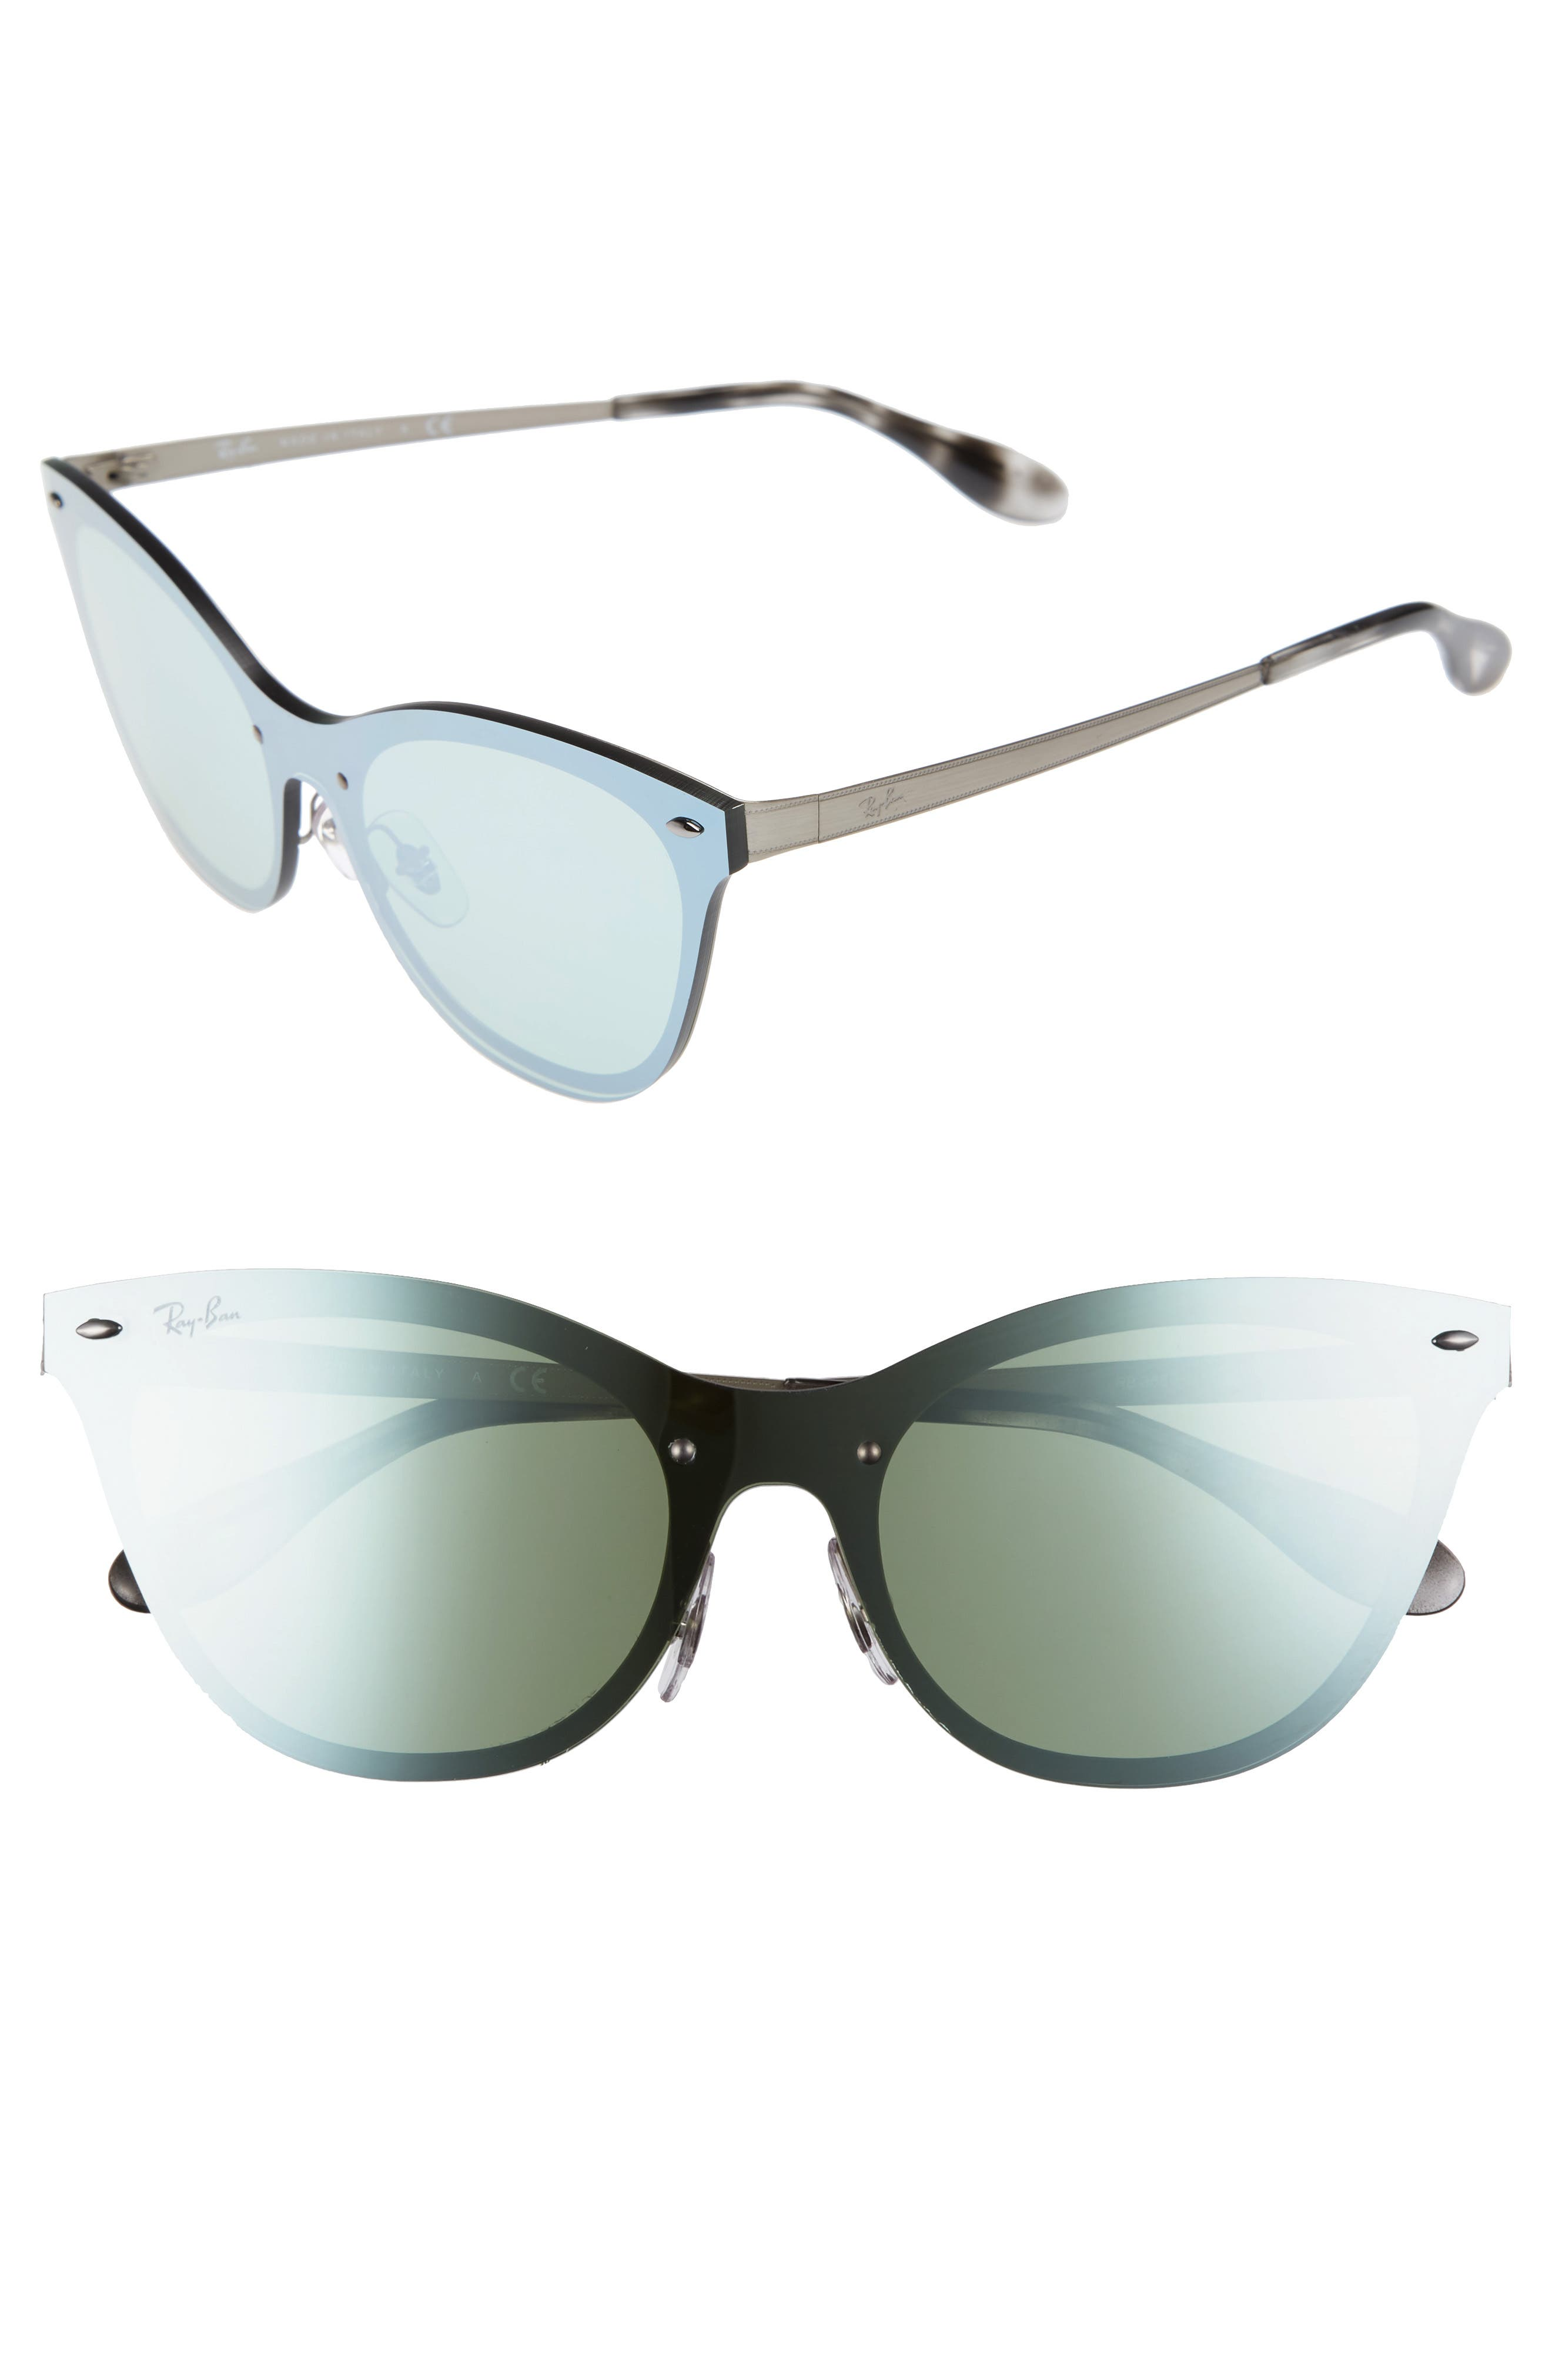 Main Image - Ray-Ban 50mm Blaze Clubmaster Mirrored Sunglasses